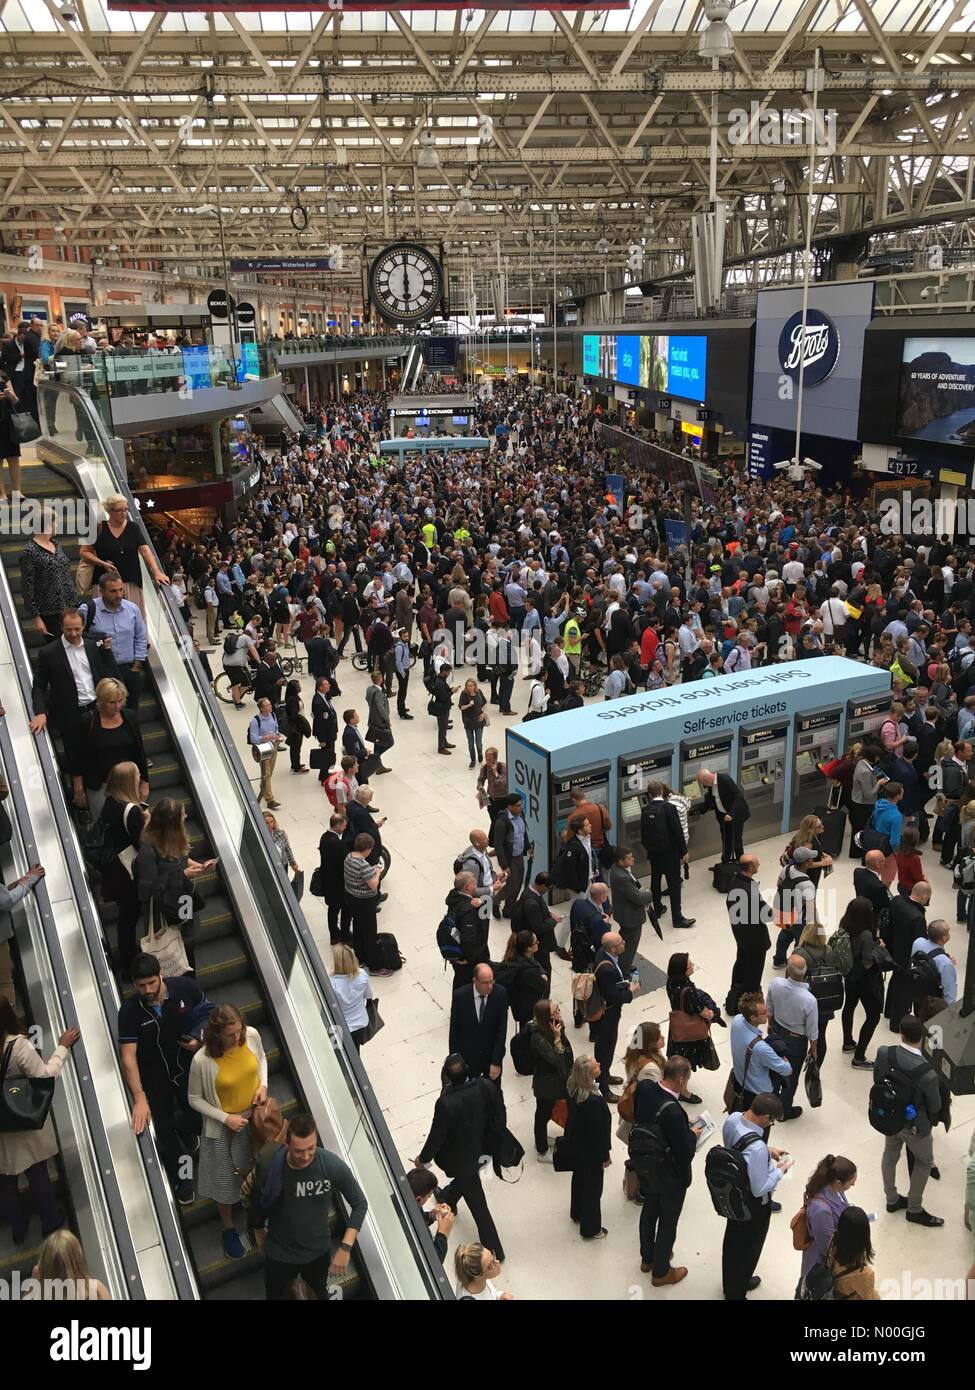 Lower Rd, London, UK. 04th Sep, 2017. Severe peak time crowding at London Waterloo due to multiple distributions - Stock Image